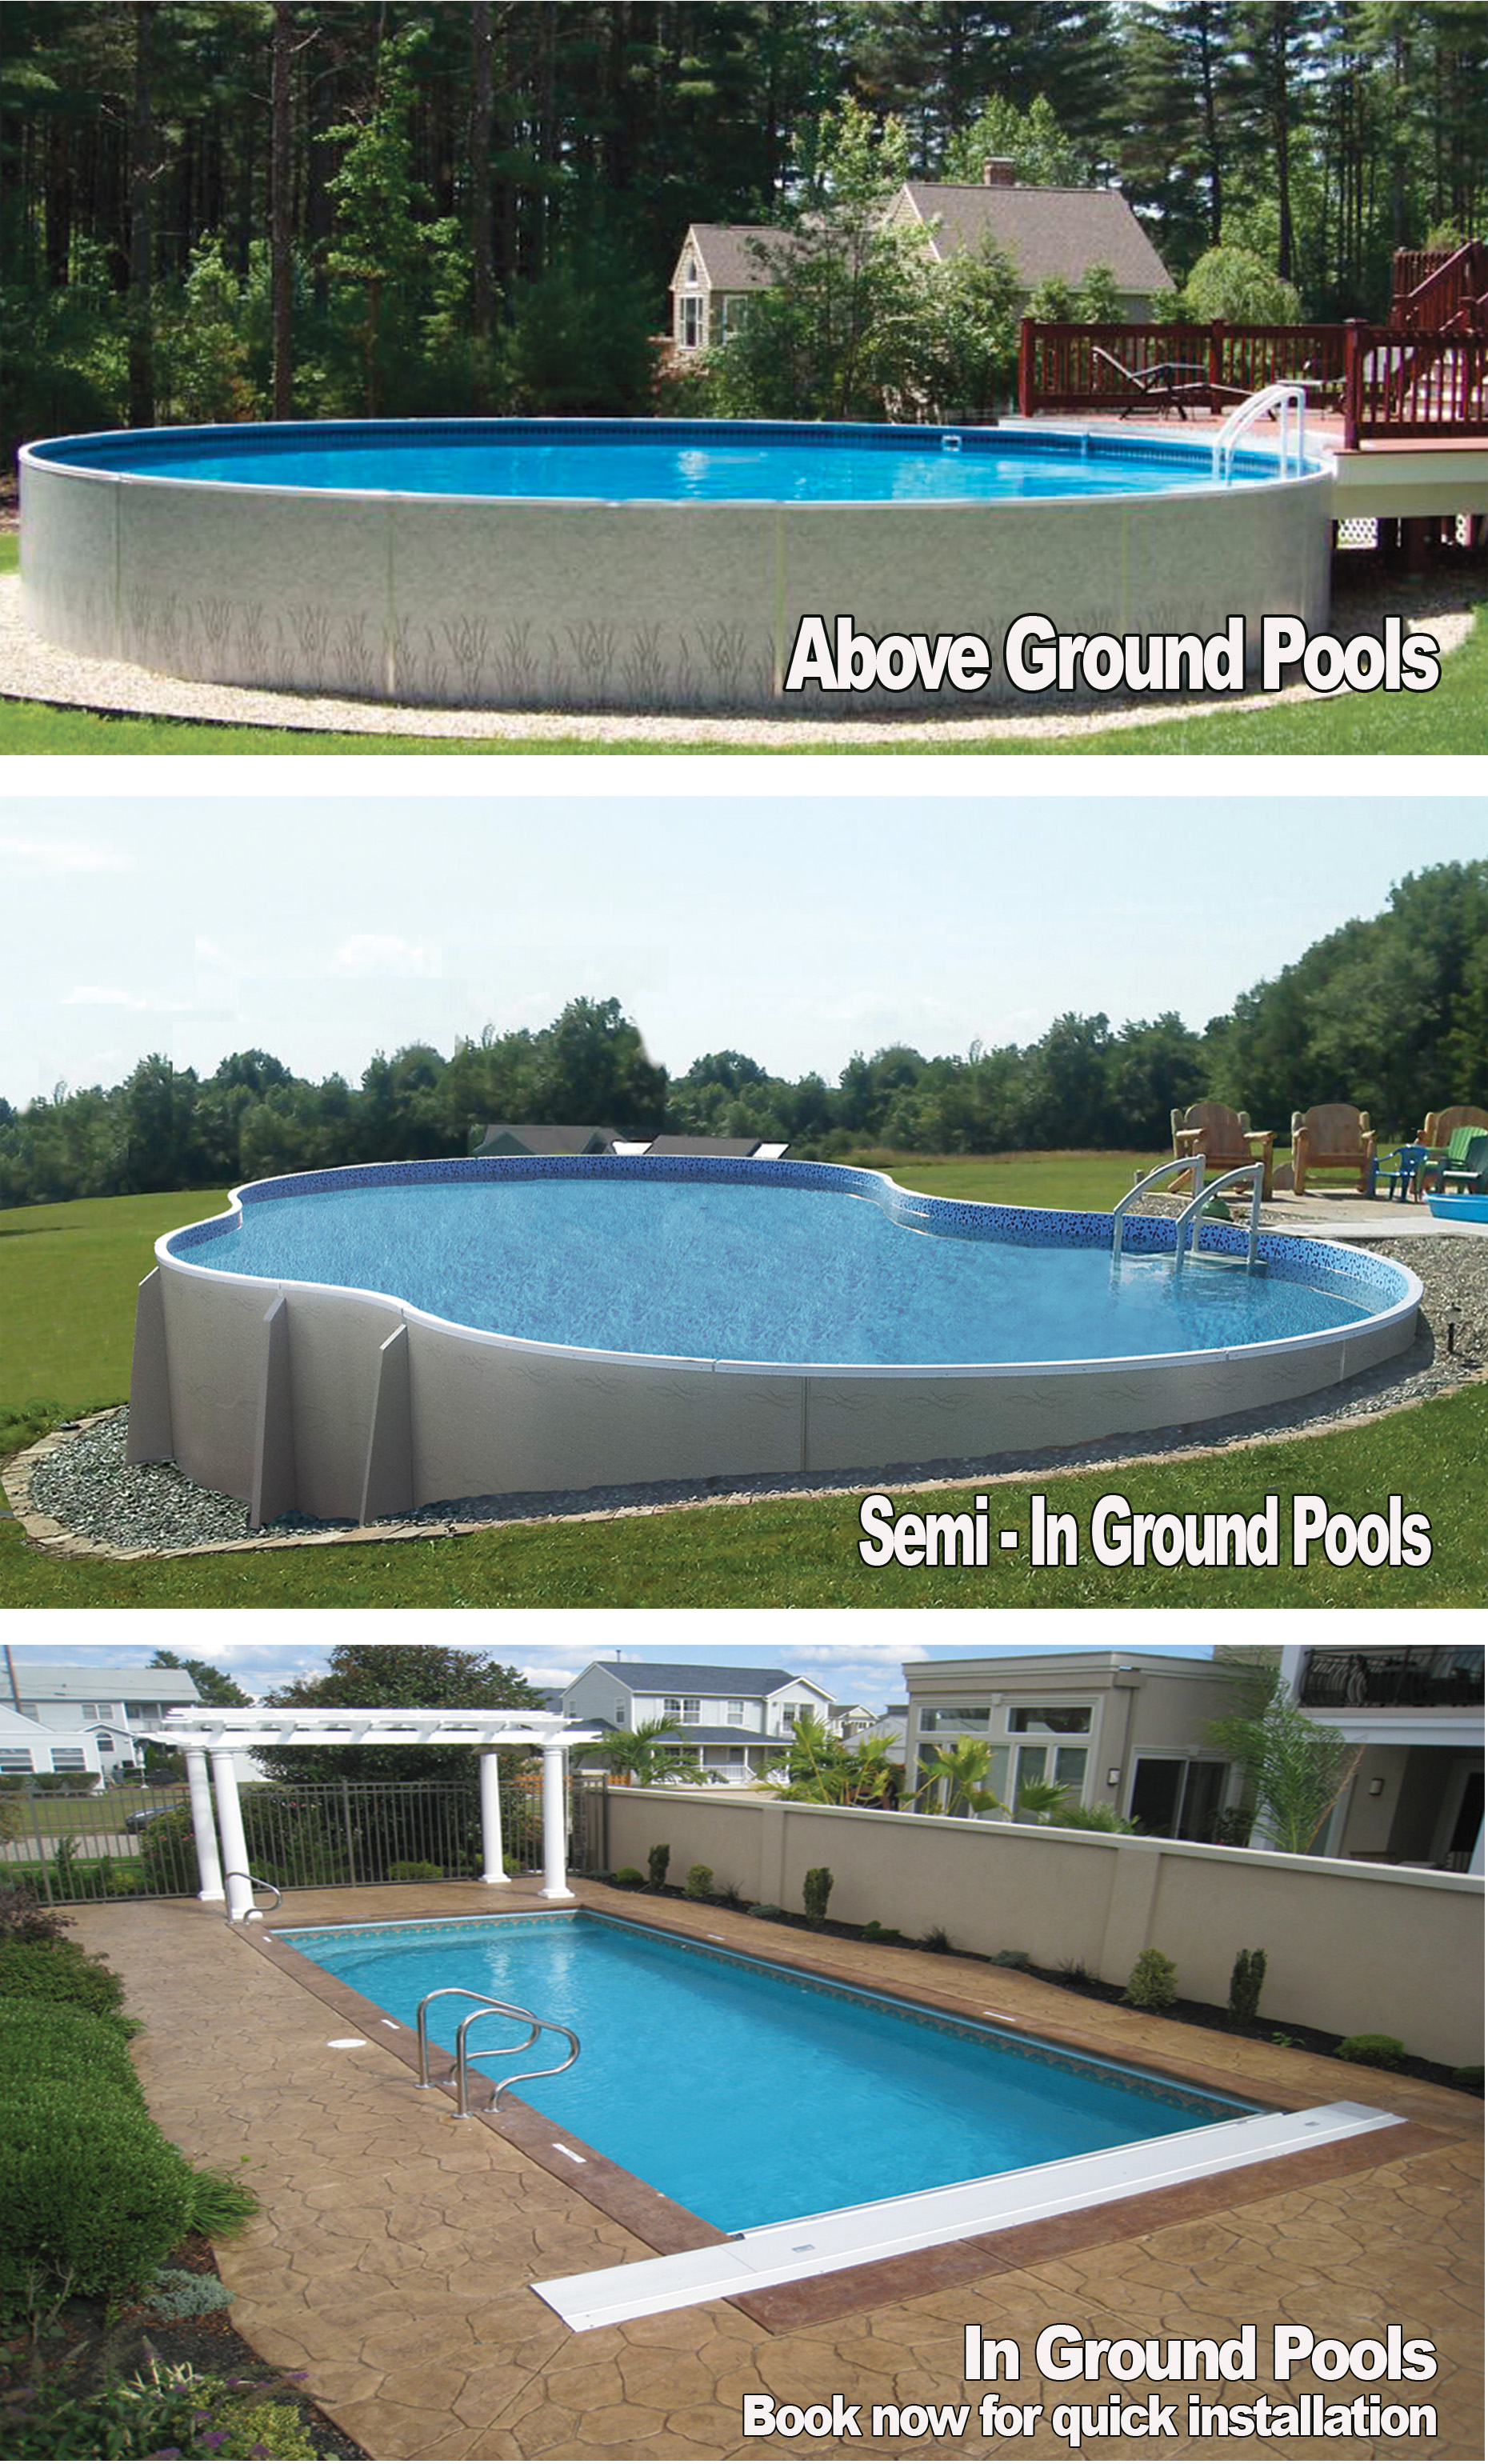 Above Ground Pools | Niagara Pool & Spa